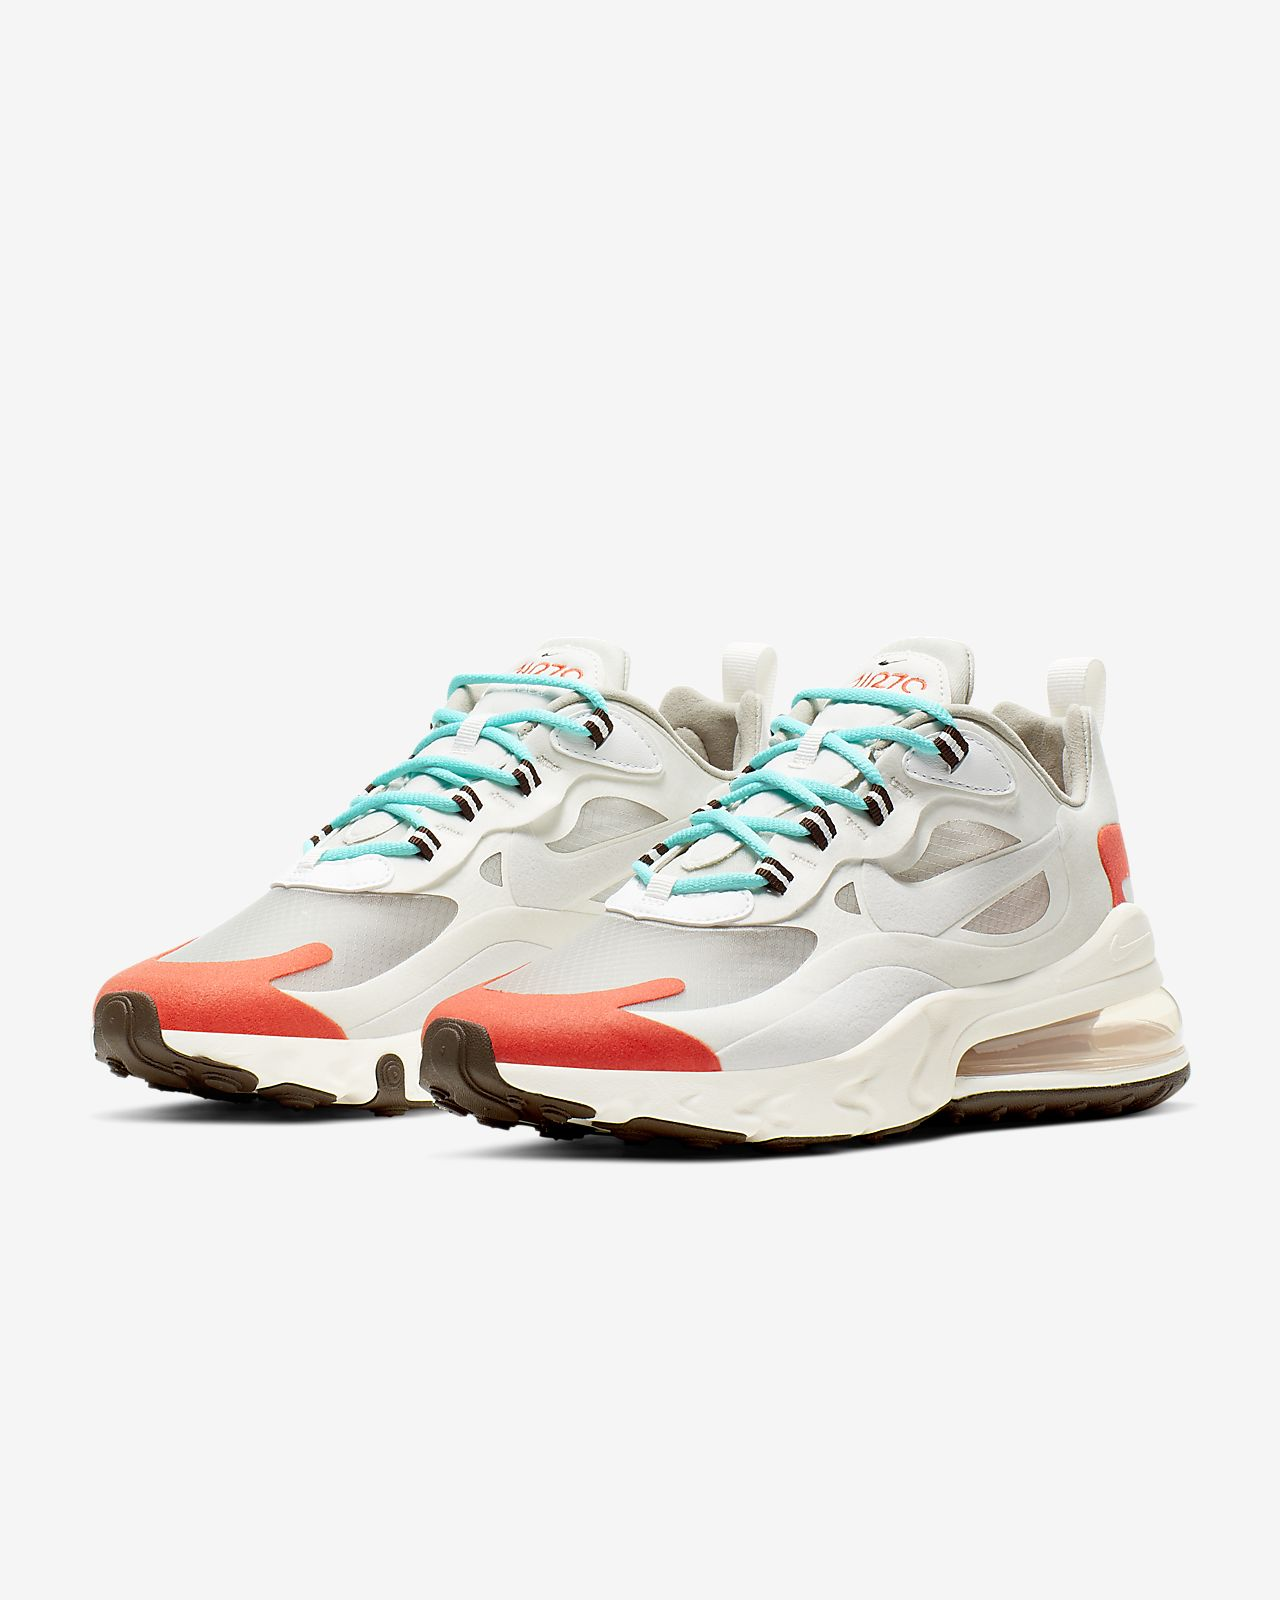 Chaussure Nike Air Max 270 React (Mid-Century) pour Femme